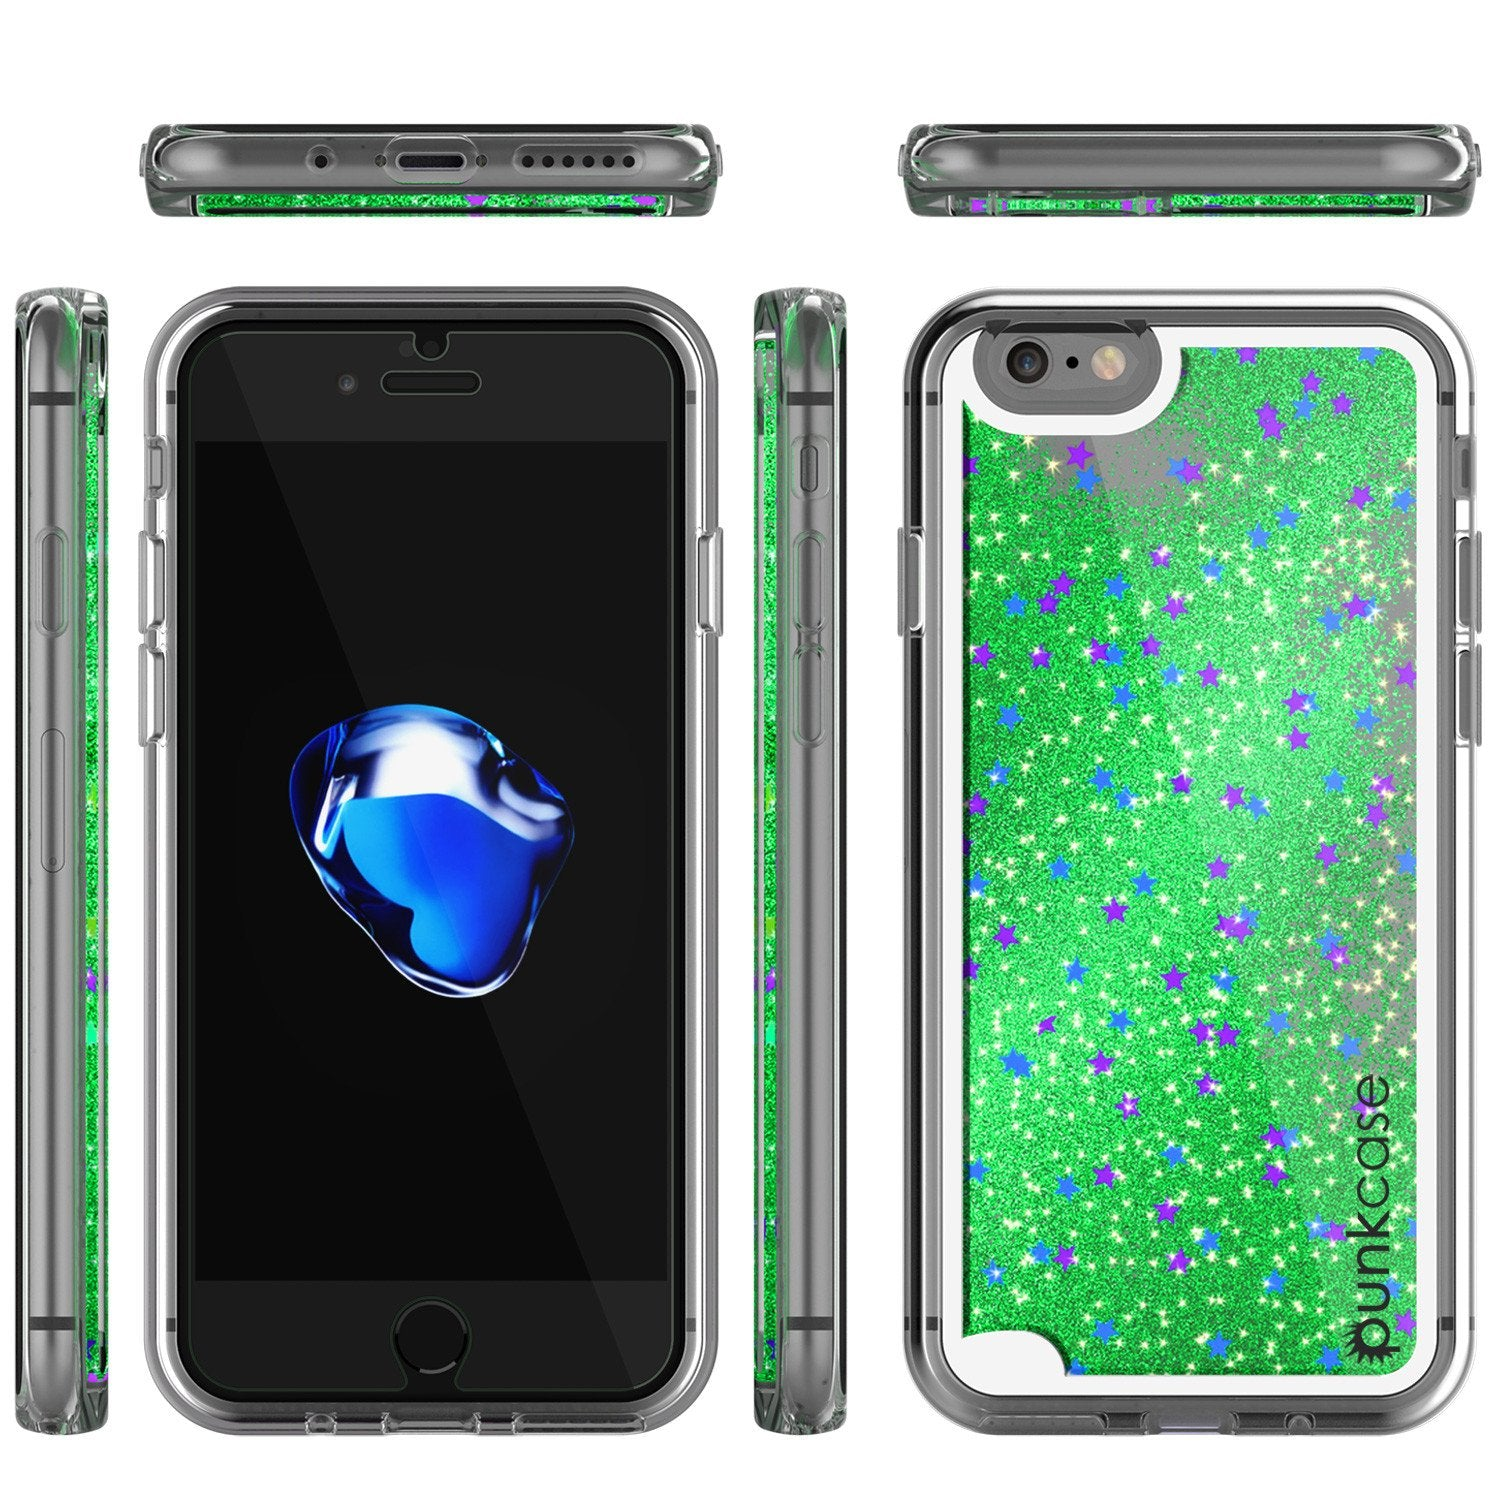 iPhone 8 Case, PunkCase LIQUID Green Series, Protective Dual Layer Floating Glitter Cover